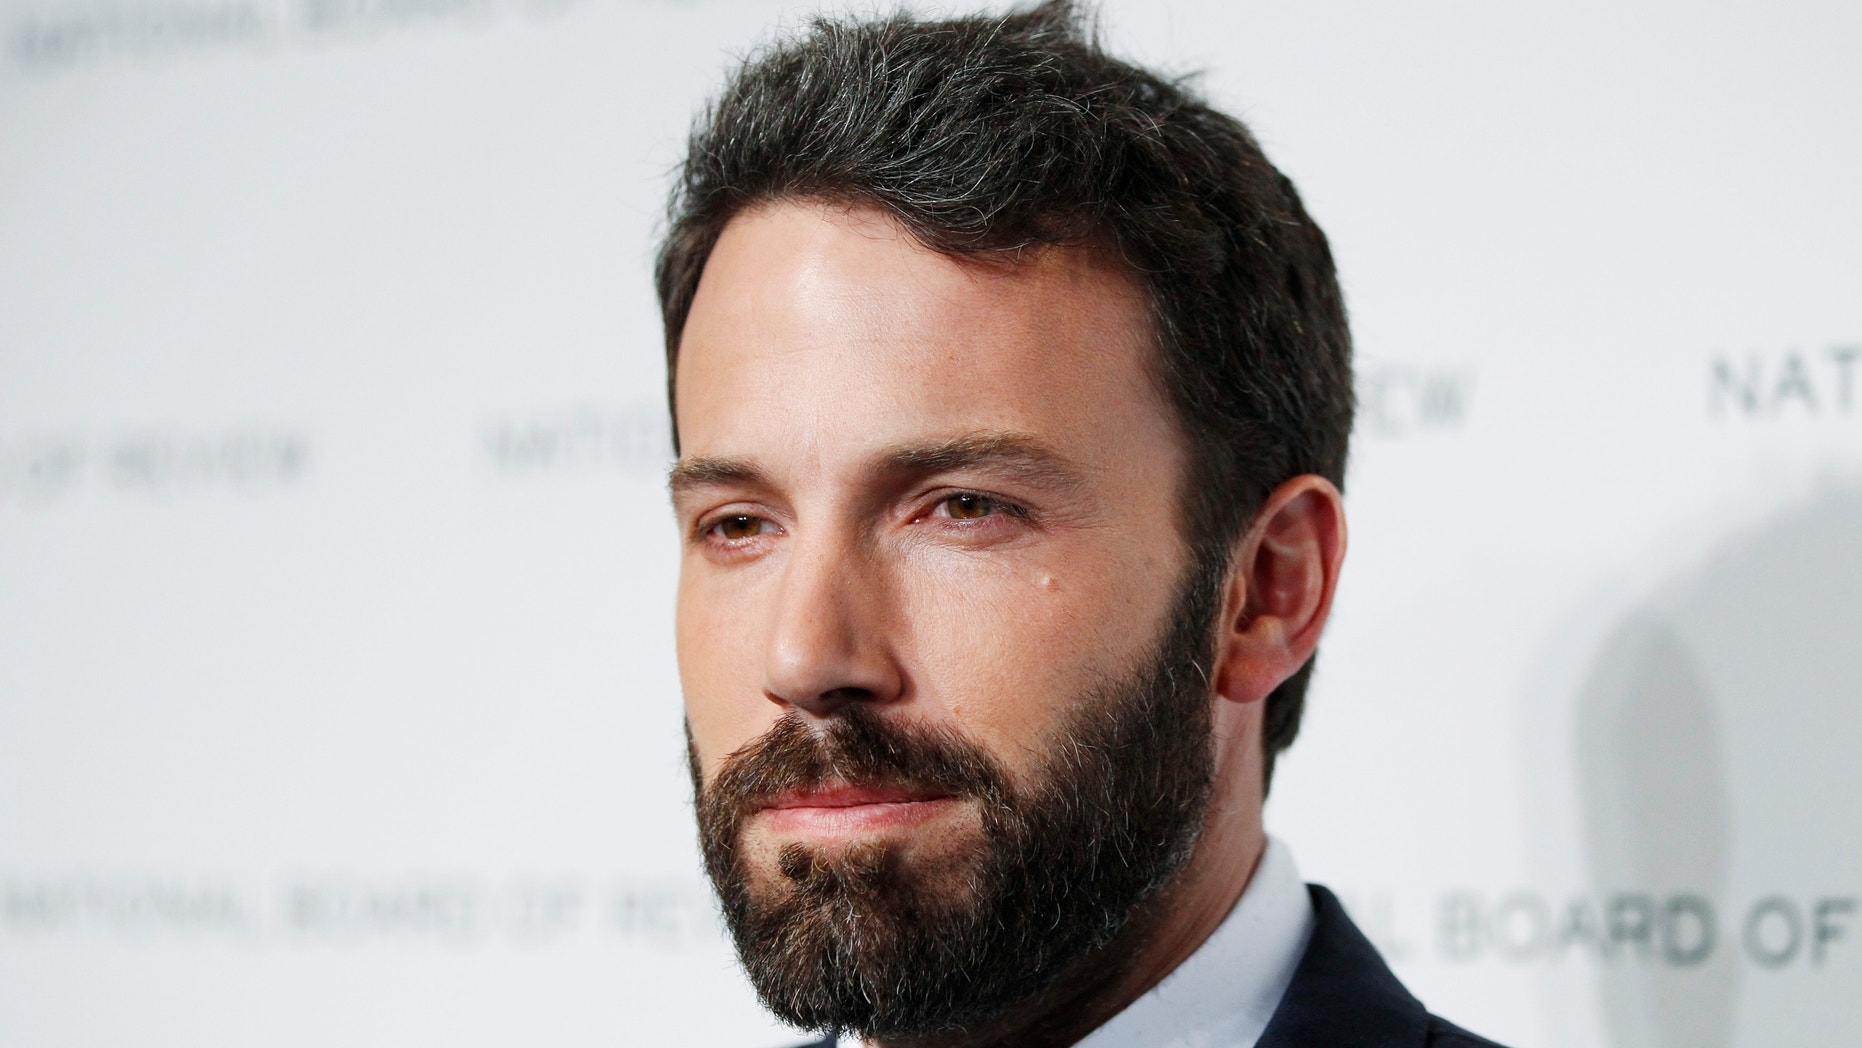 """Ben Affleck of the film """"The Town"""" arrives for the National Board of Review of Motion Pictures Awards Gala in New York Jan. 11, 2011."""